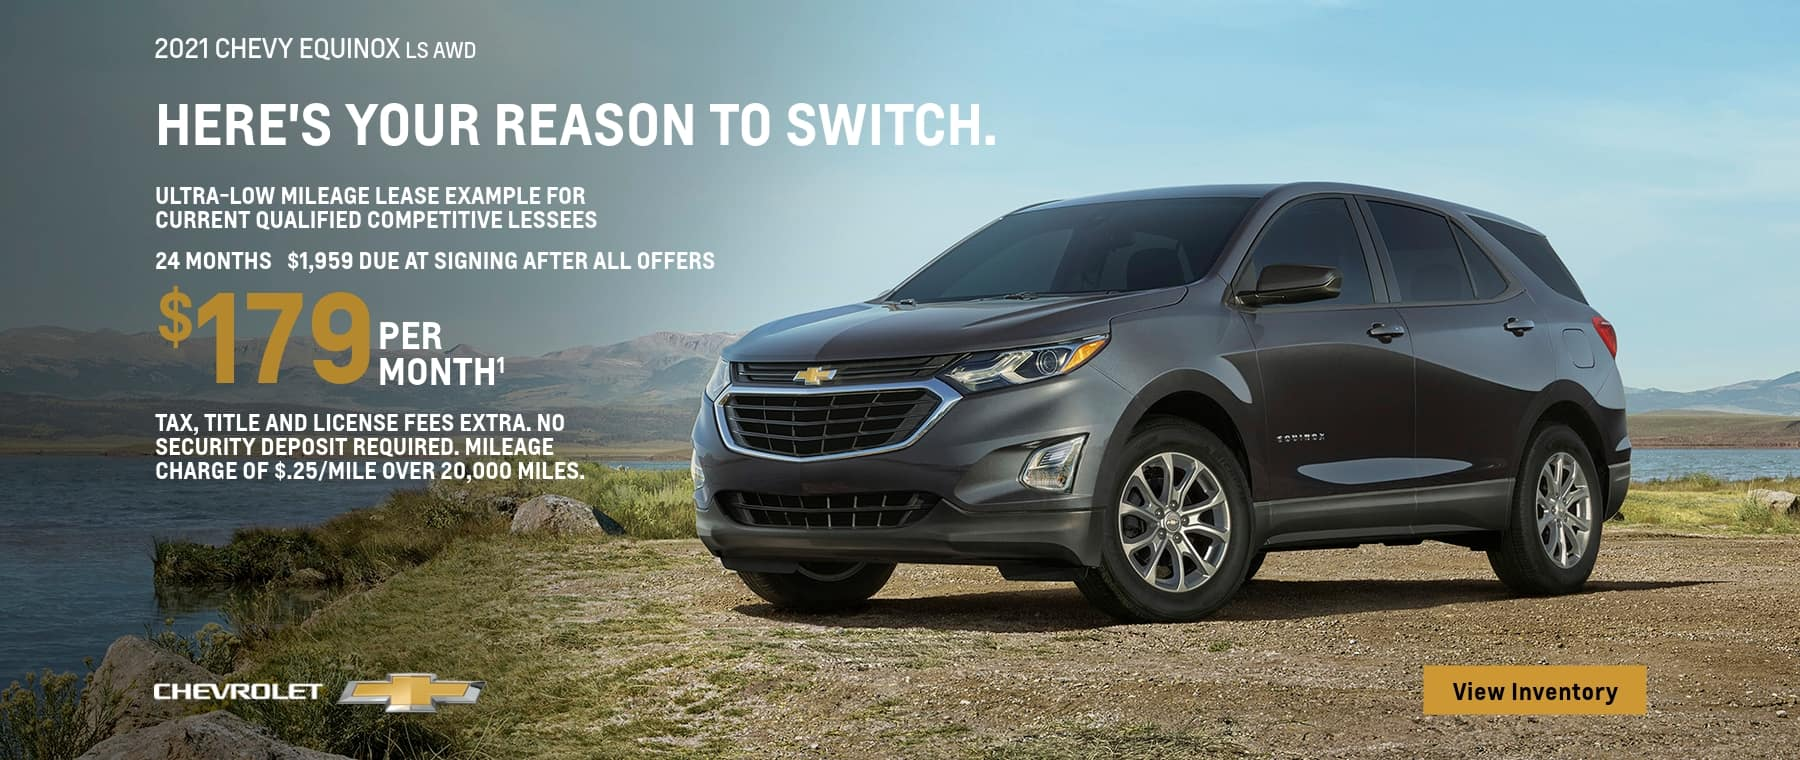 2021 Chevy Equinox LS AWD. Ultra low mileage lease example for current qualified competitive lessees. $179 per month for 24 months. $1,959 due at signing after all offers.